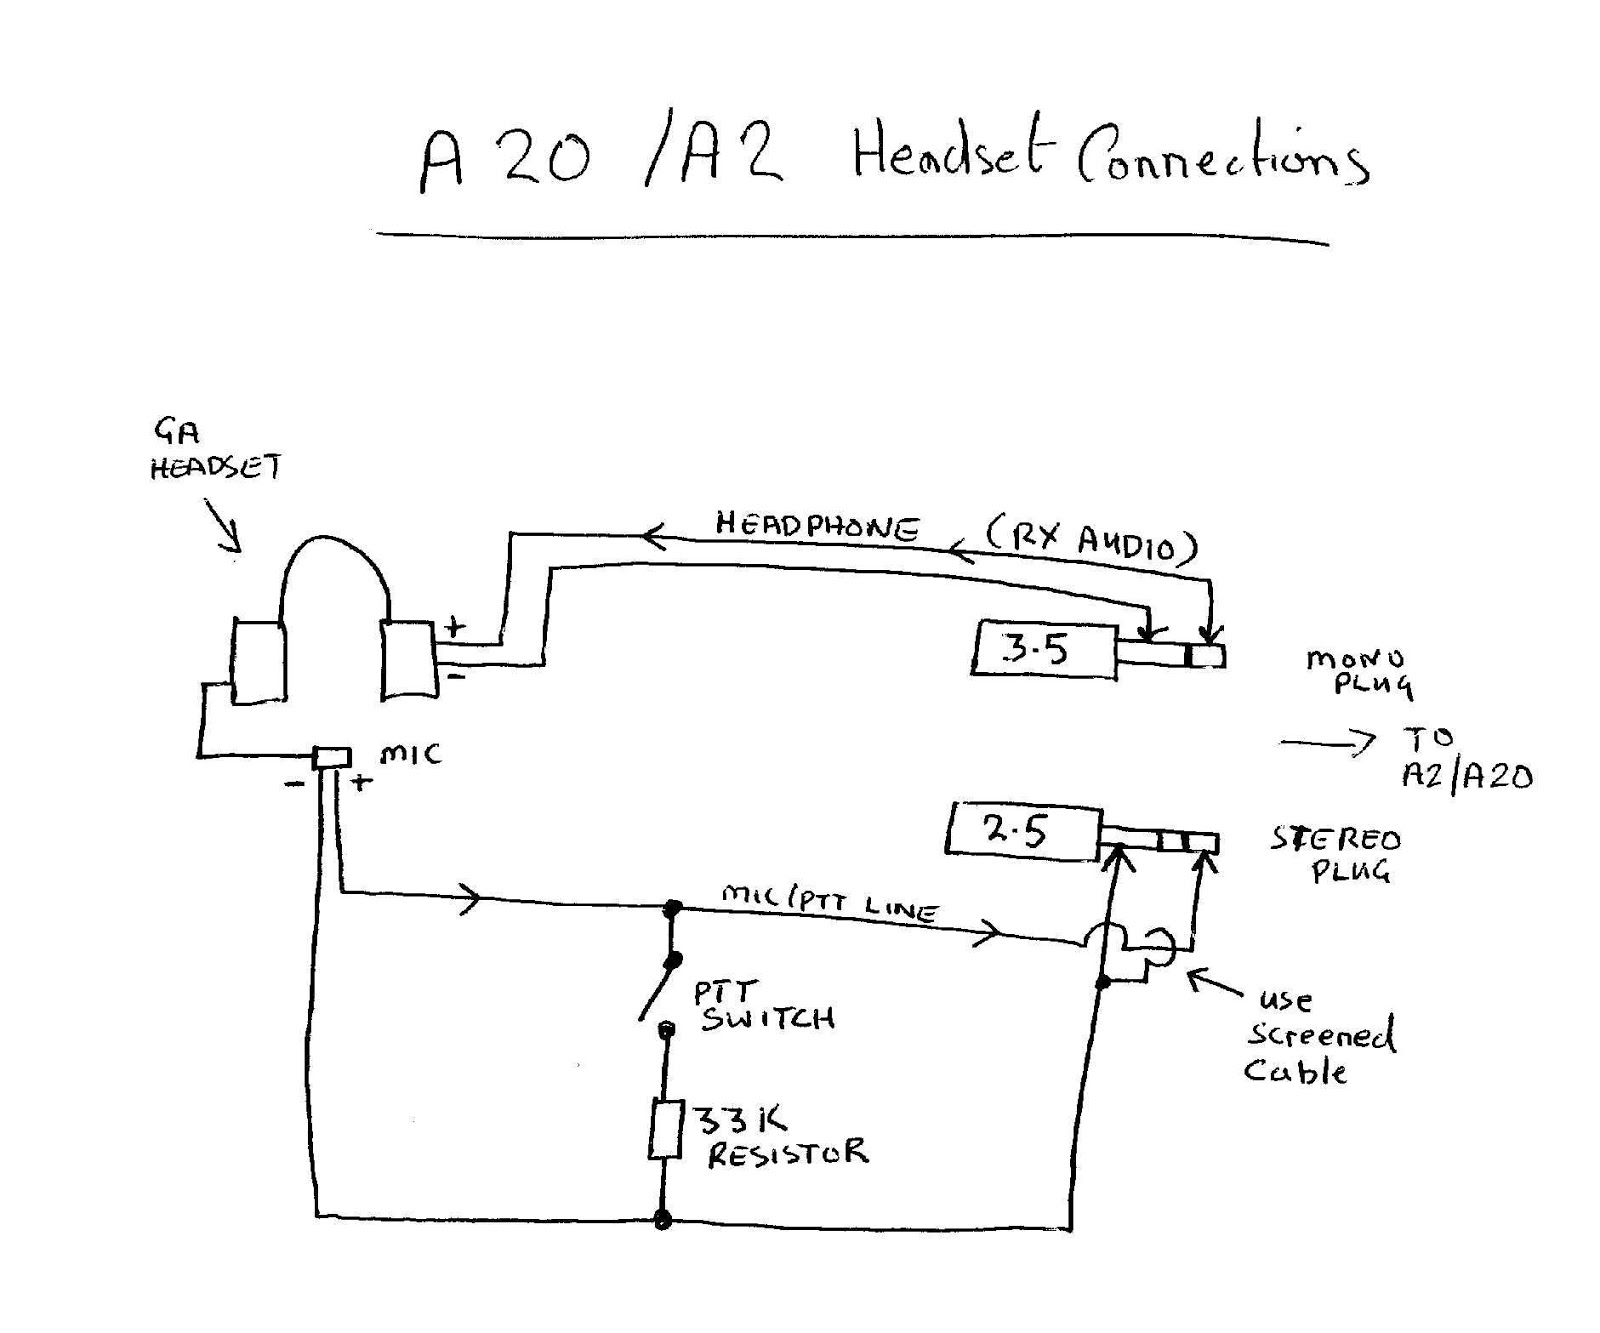 Bose Headset Wiring - Wiring Diagram - Headphone Jack Wiring Diagram